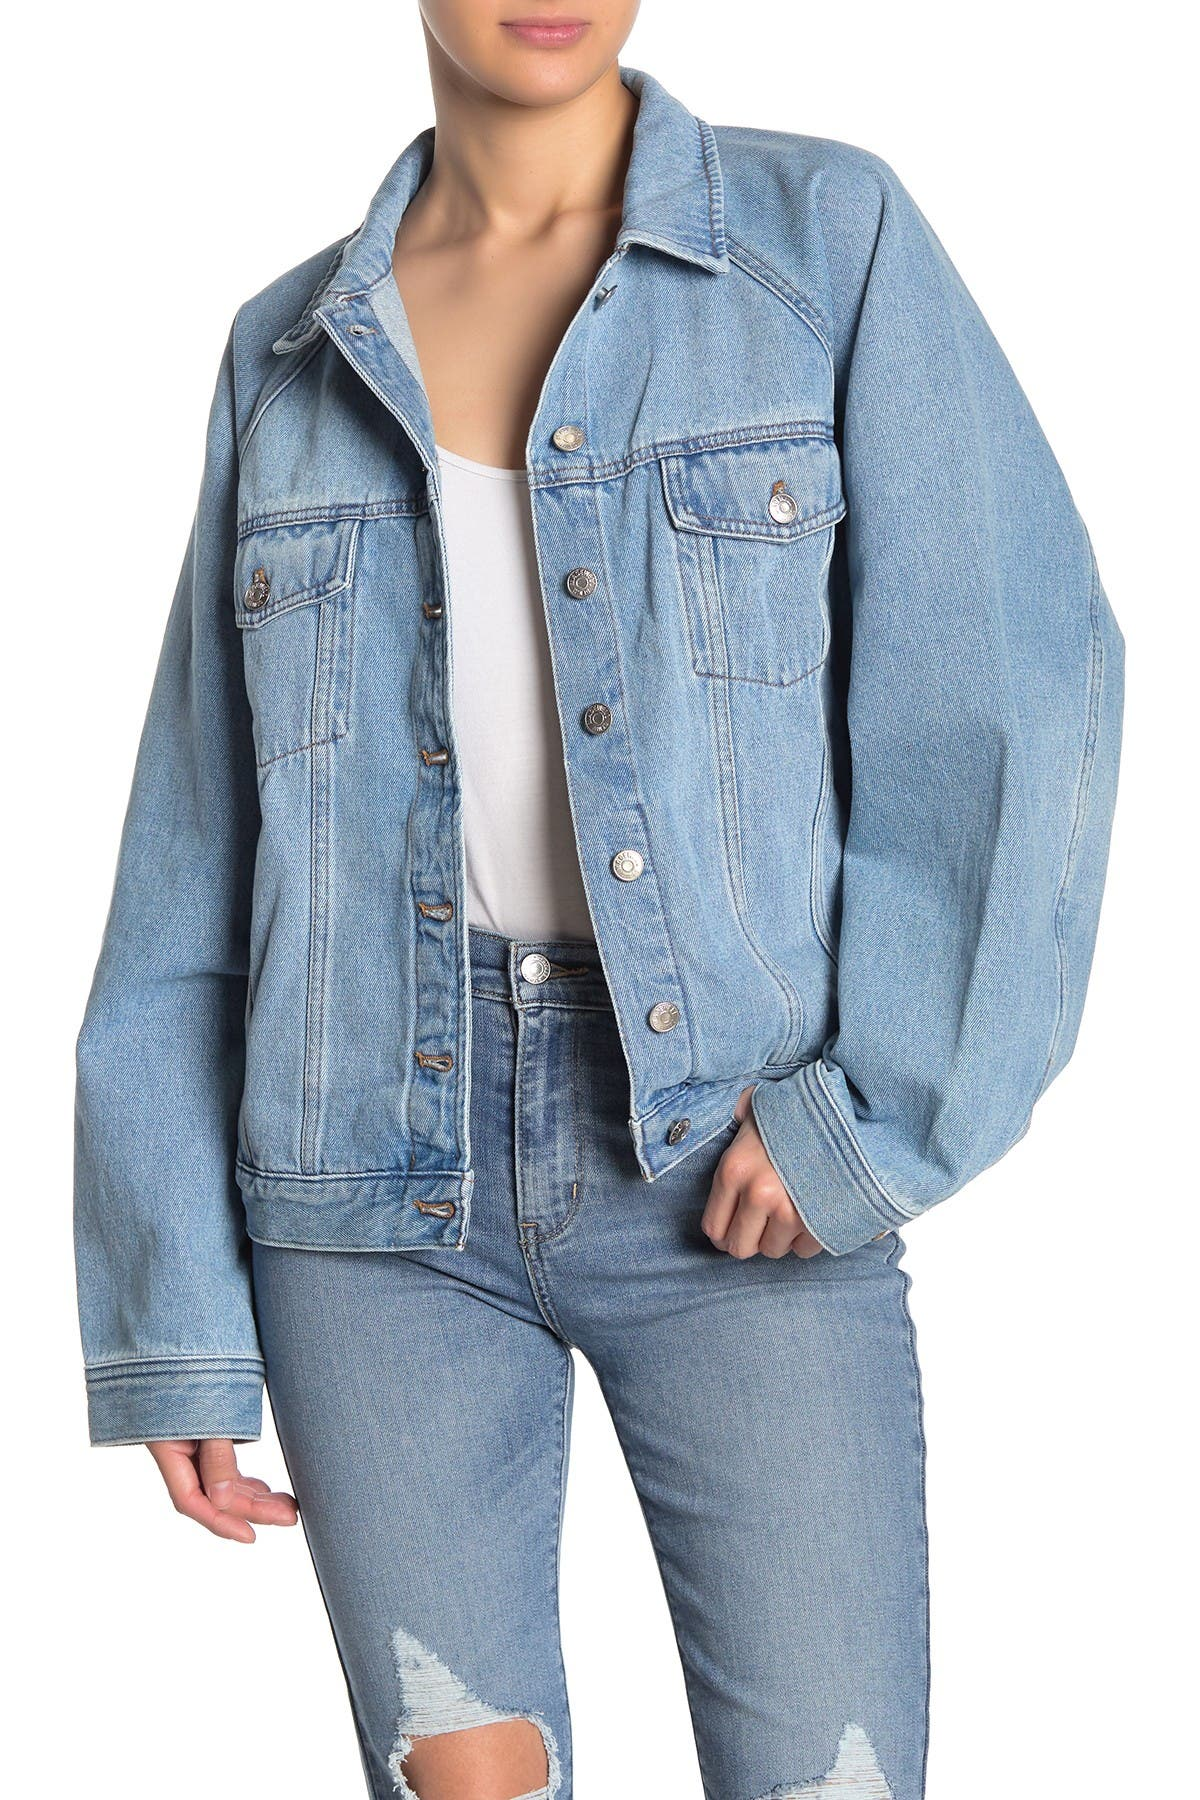 Image of Madewell Raglan Oversized Jean Jacket